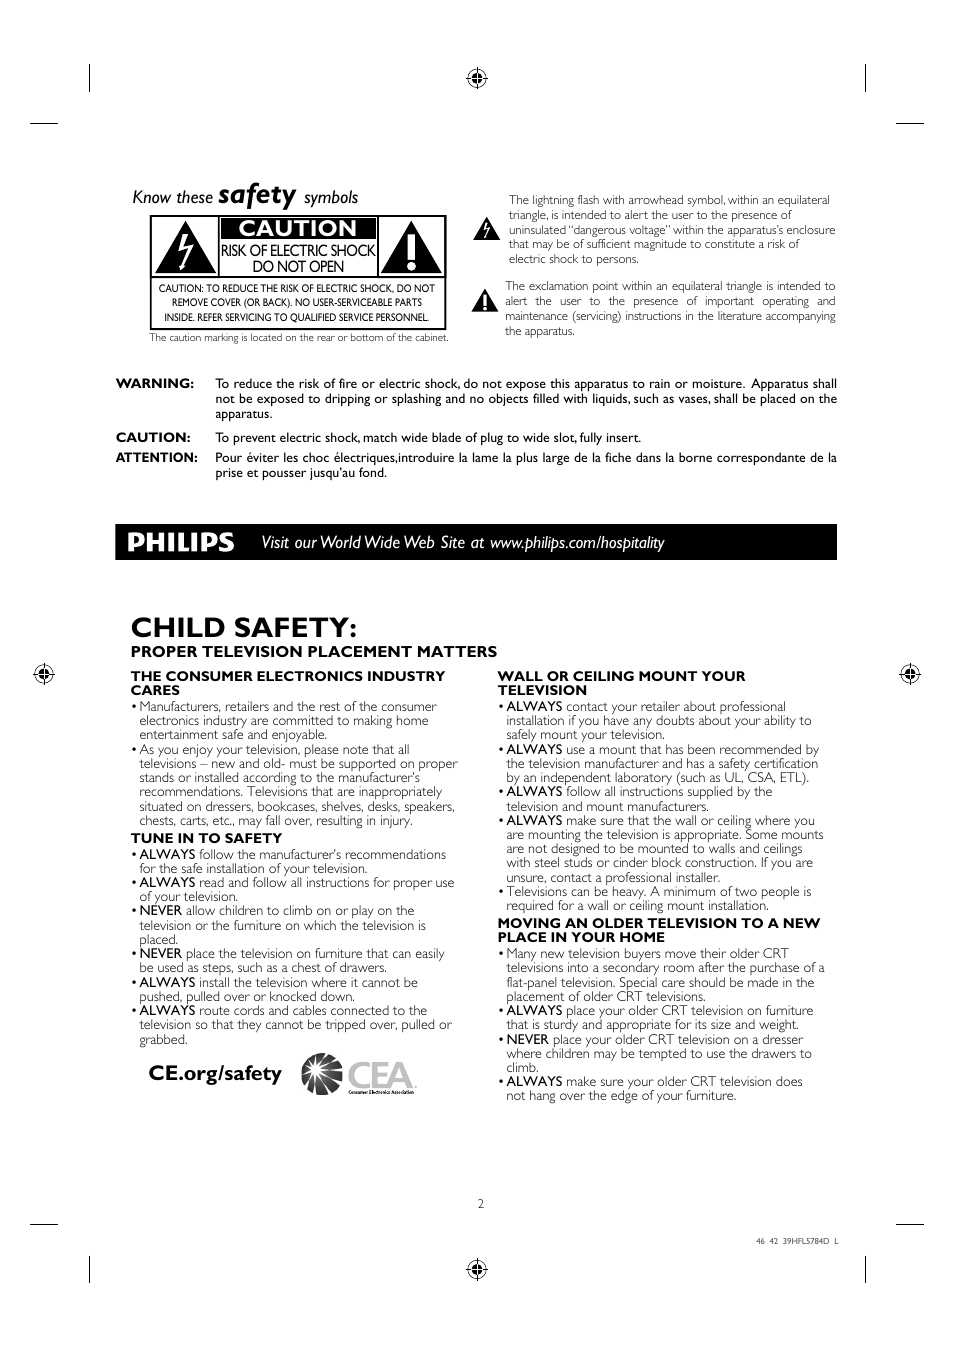 Safety, Child safety, Caution | Philips Hospitality LED-LCD TV